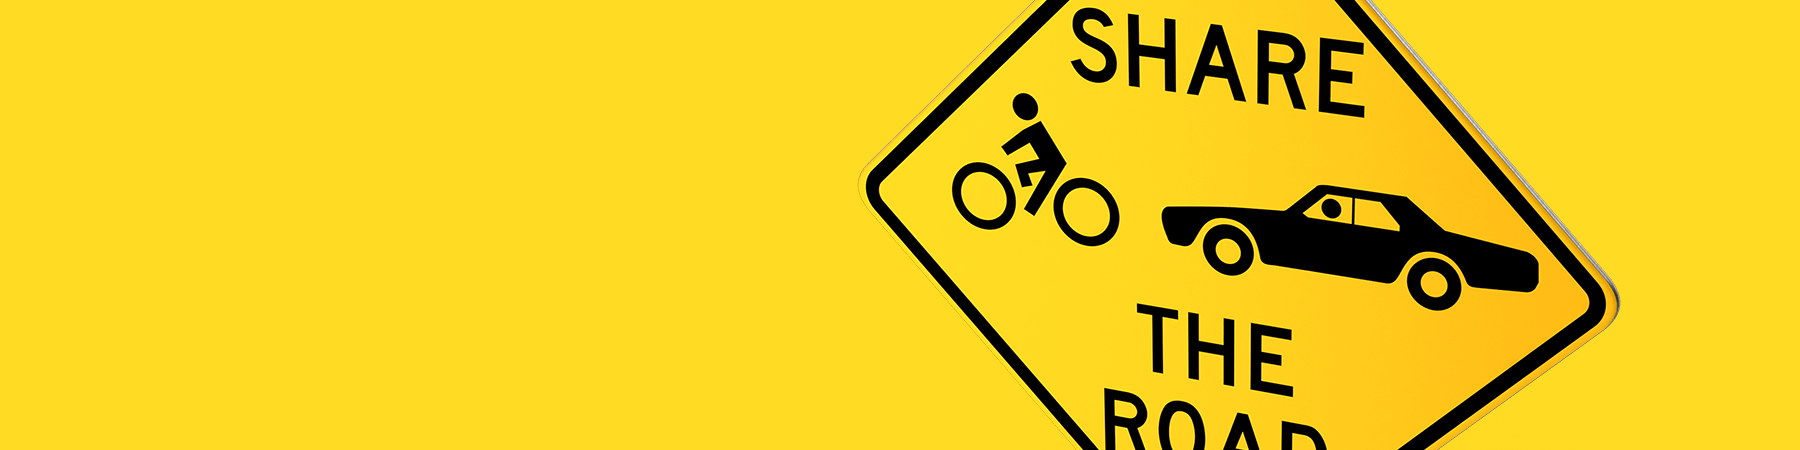 yellow and black diamond share the road sign